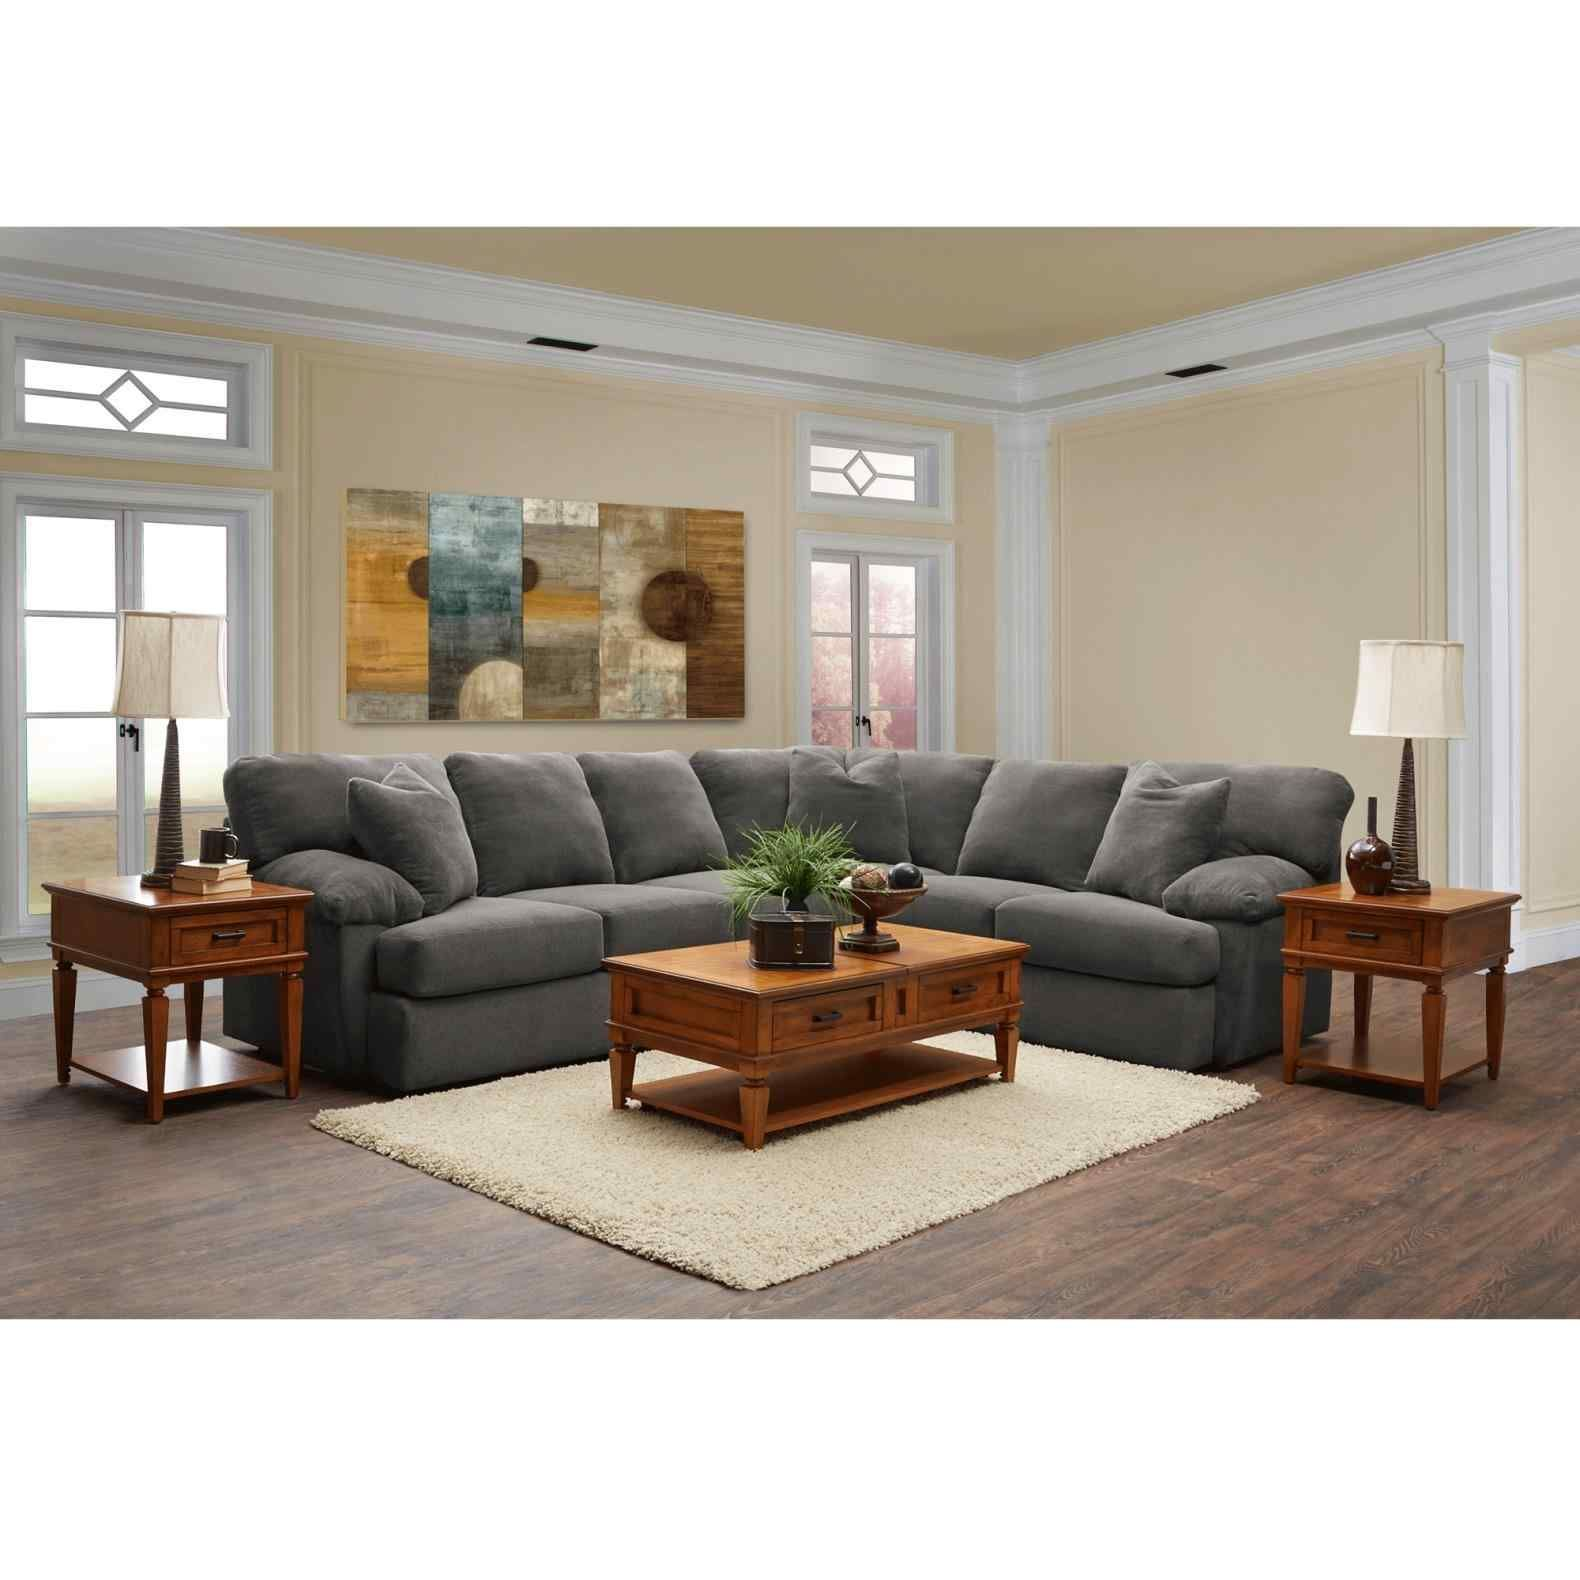 appealing cheap sectional sofas free shipping near me with ...